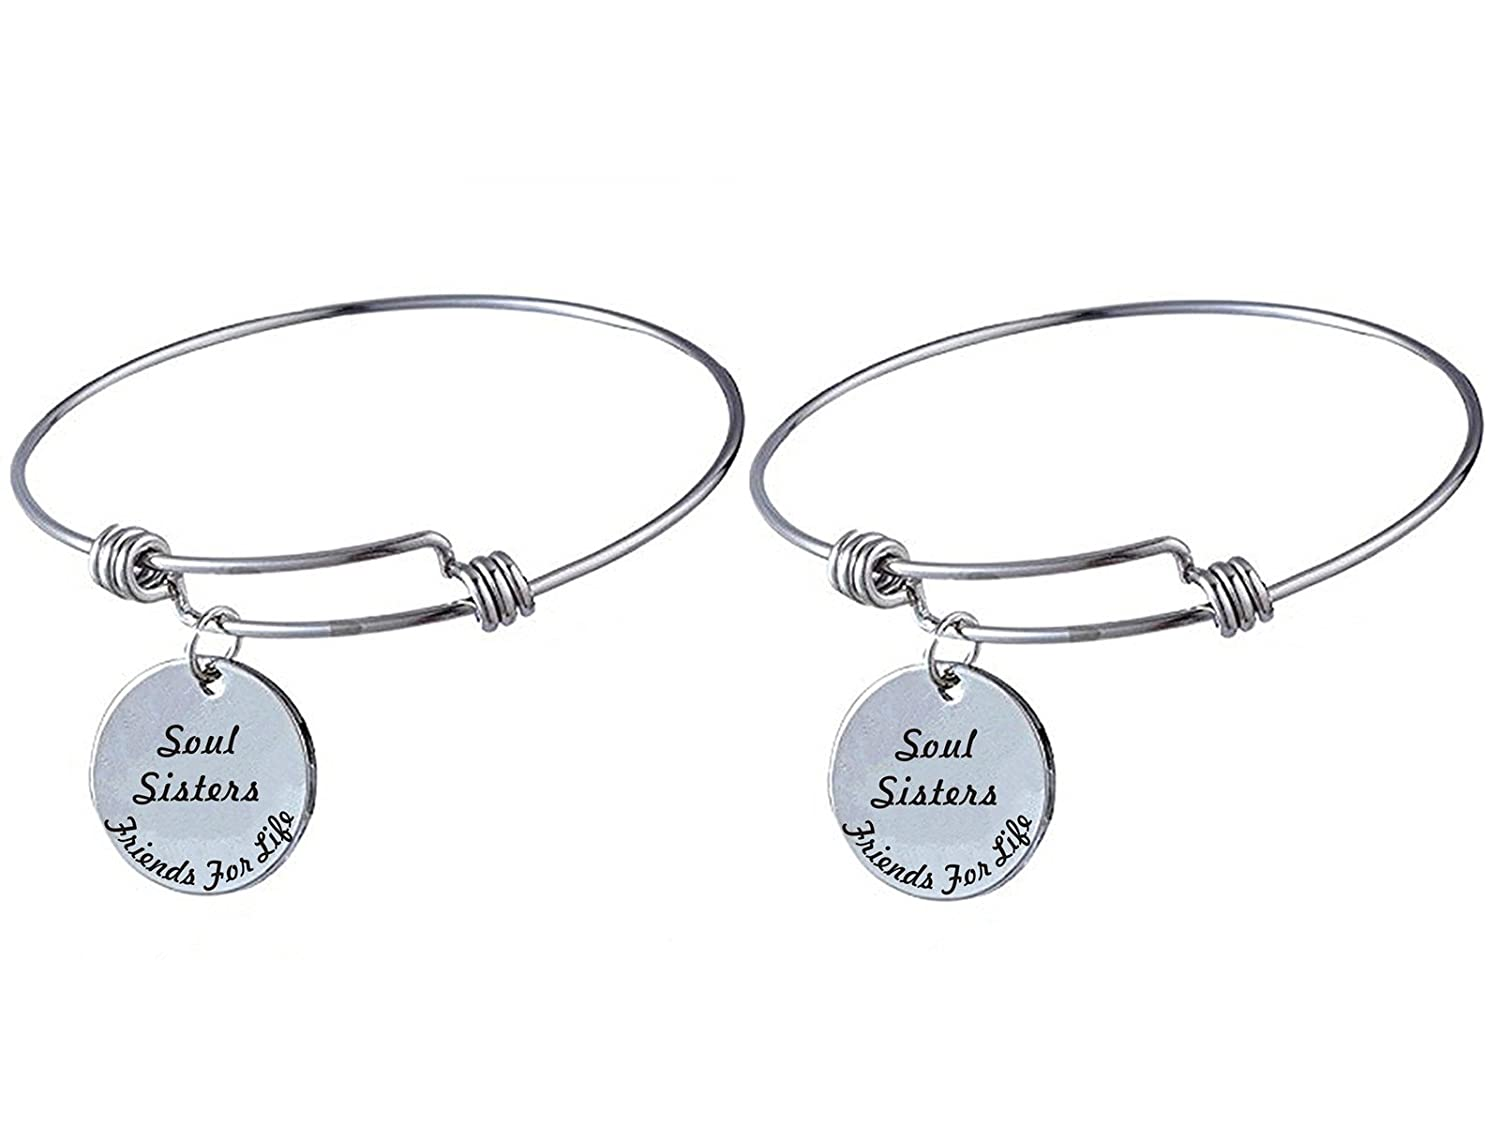 Set of 2 Soul Sisters Friends For Life Matching Stainless Steel Expandable Bracelets Jewelry Inspirational Gift for Best Friends Forever, BFF, Besties